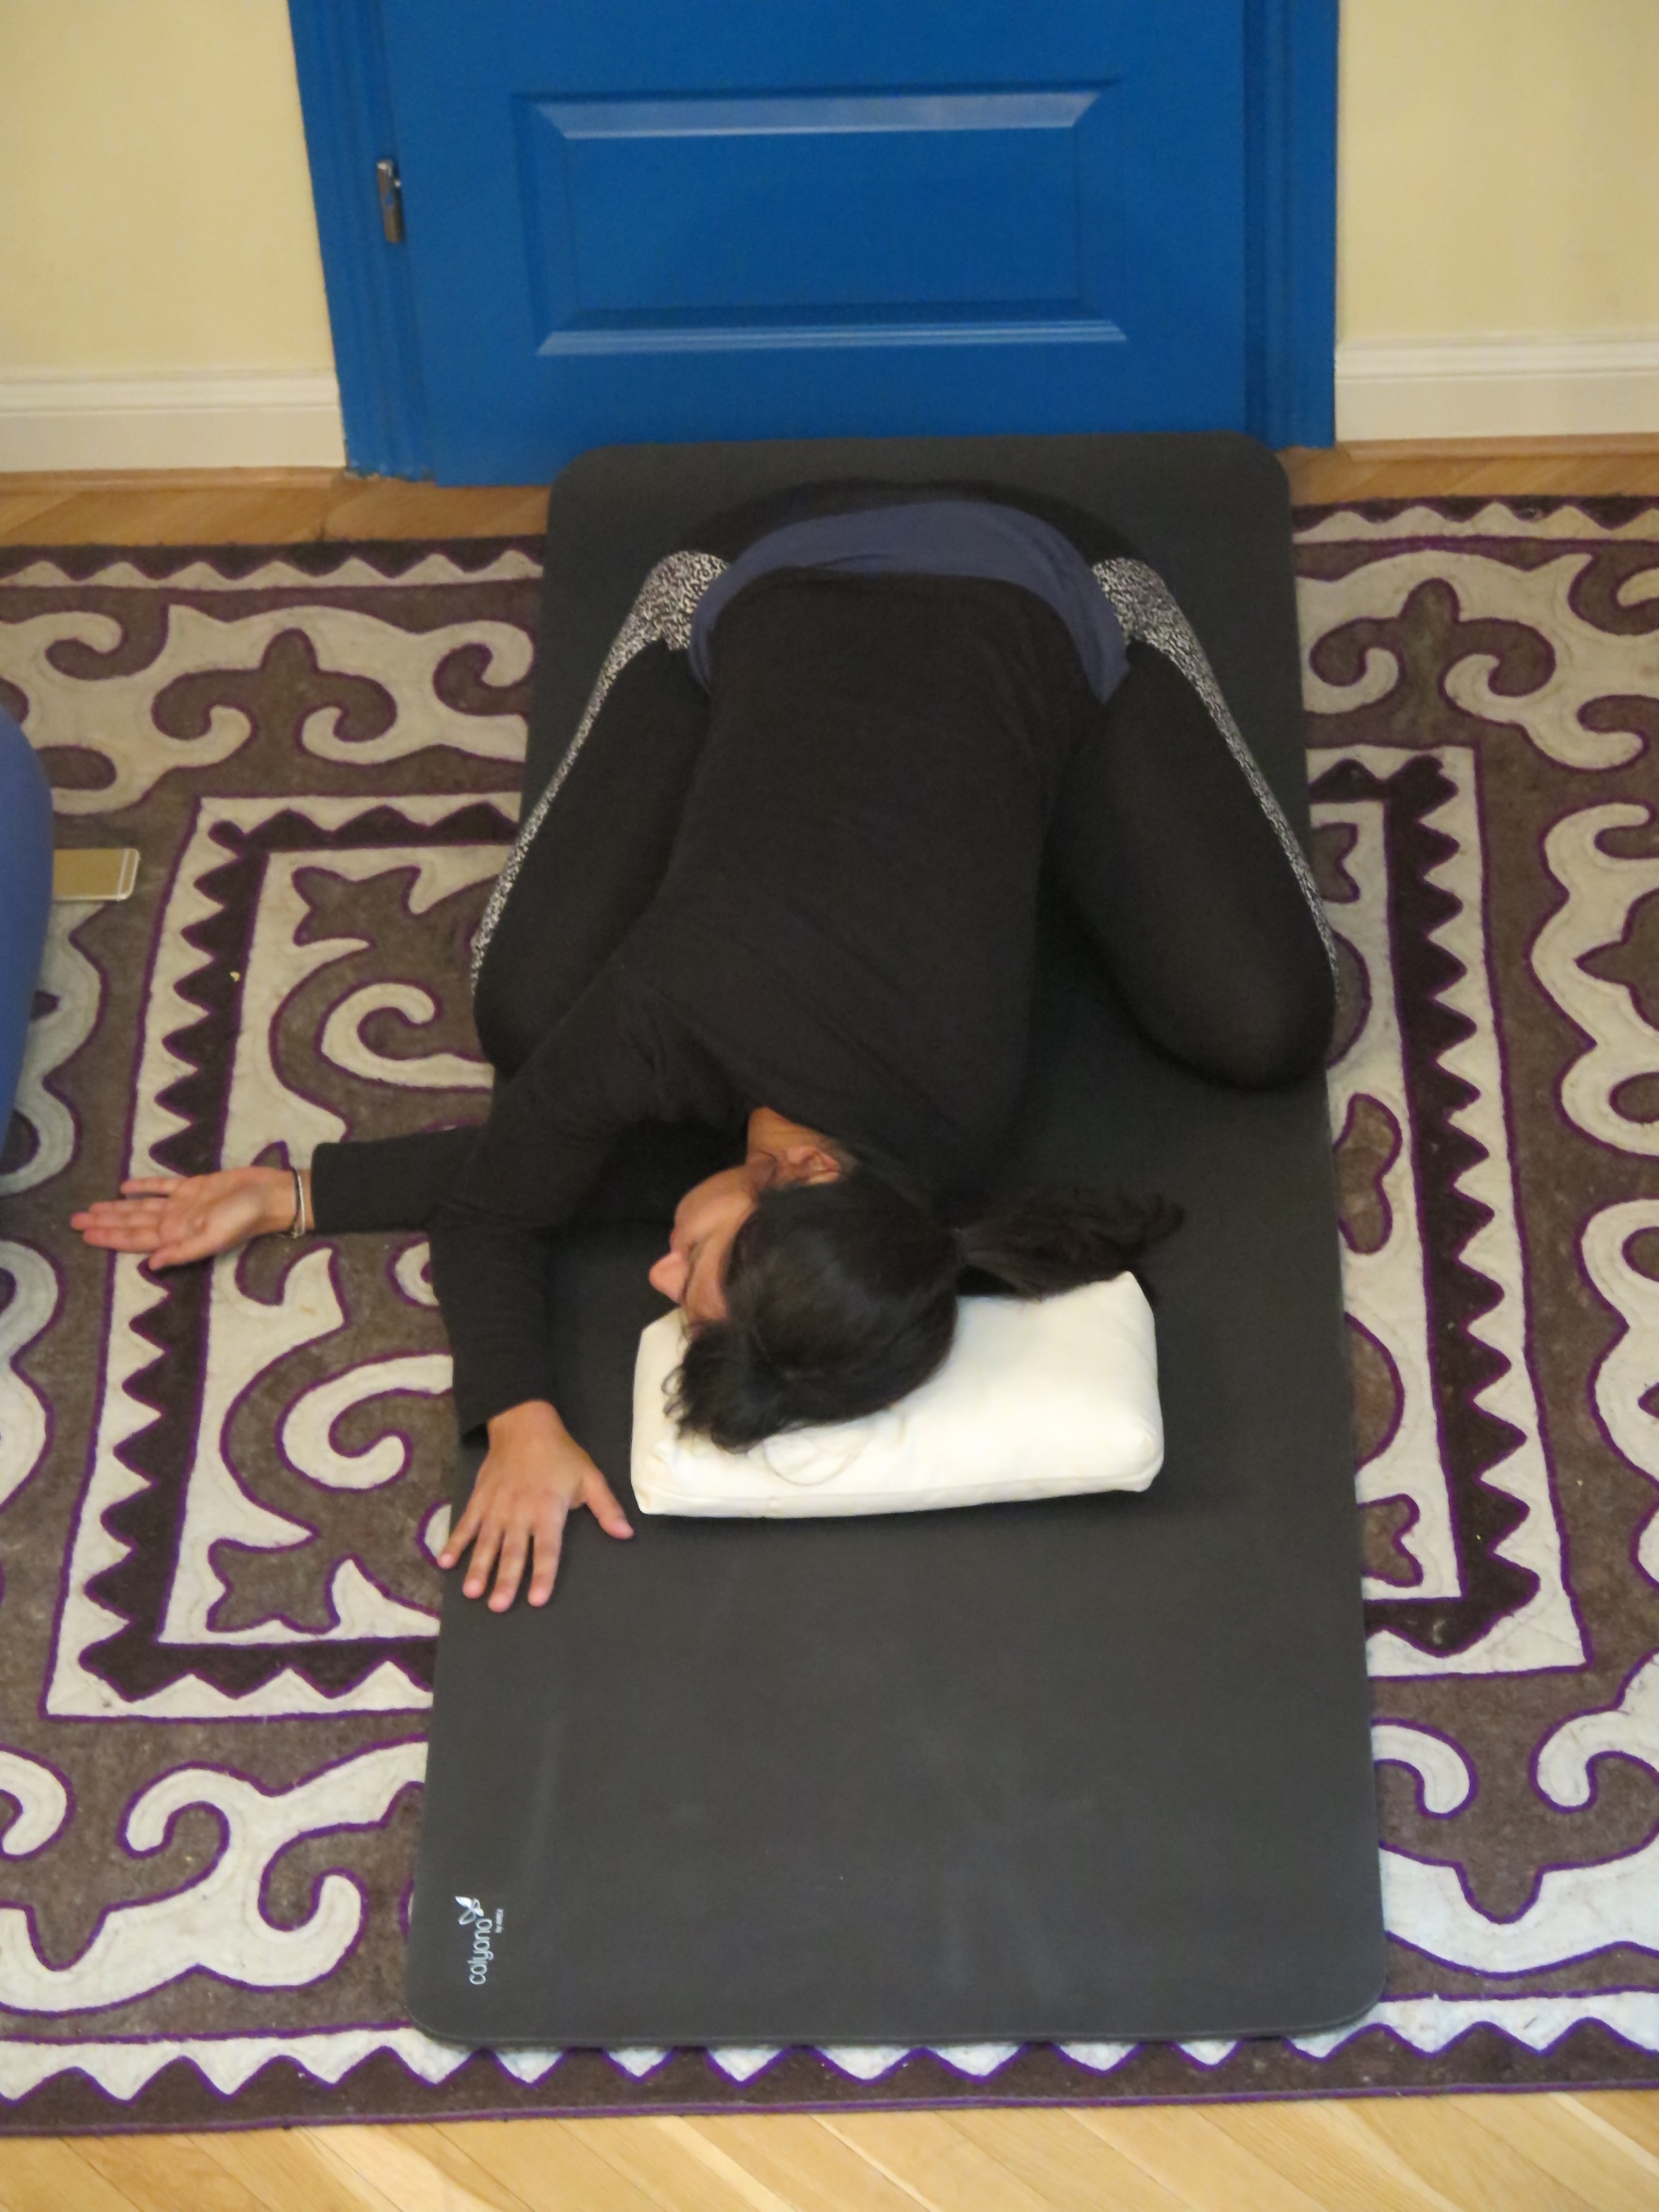 Restorative Yoga Pose-Kindspose mit Twist